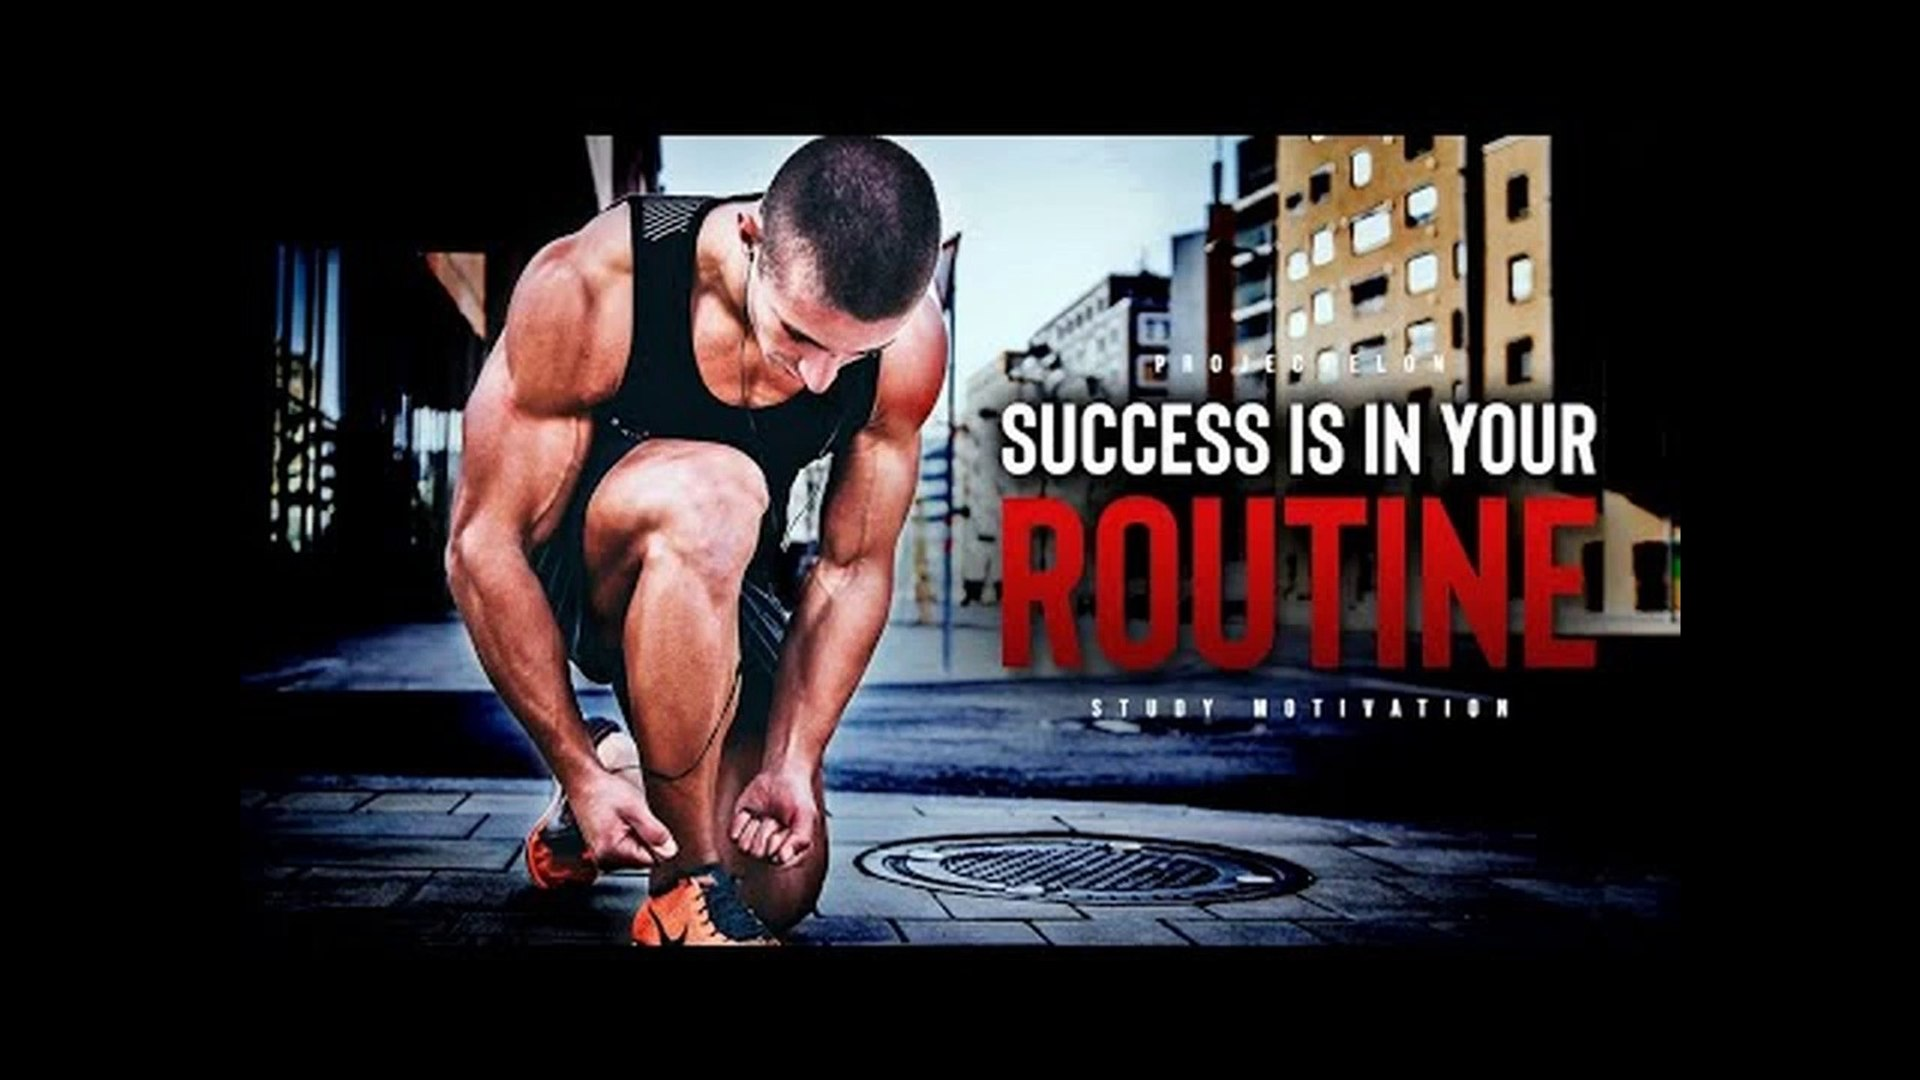 Success Starts In Your Daily Routine! - Morning Motivation